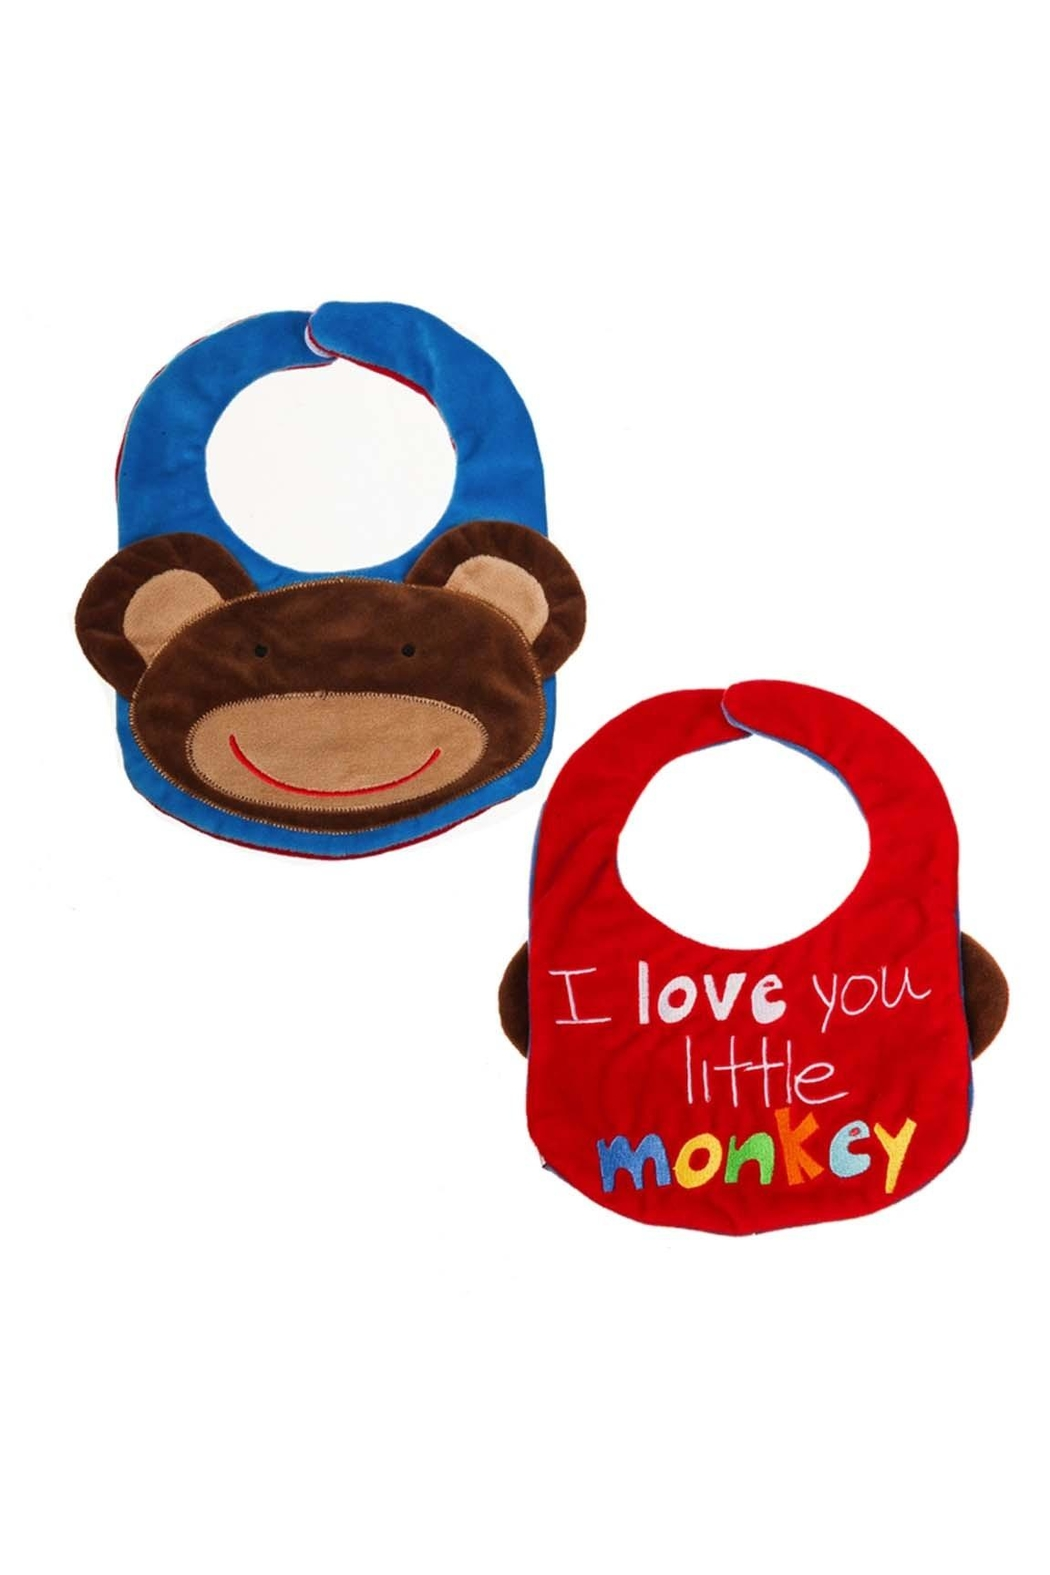 Evergreen Enterprises Reversible Bib- Monkey - Main Image